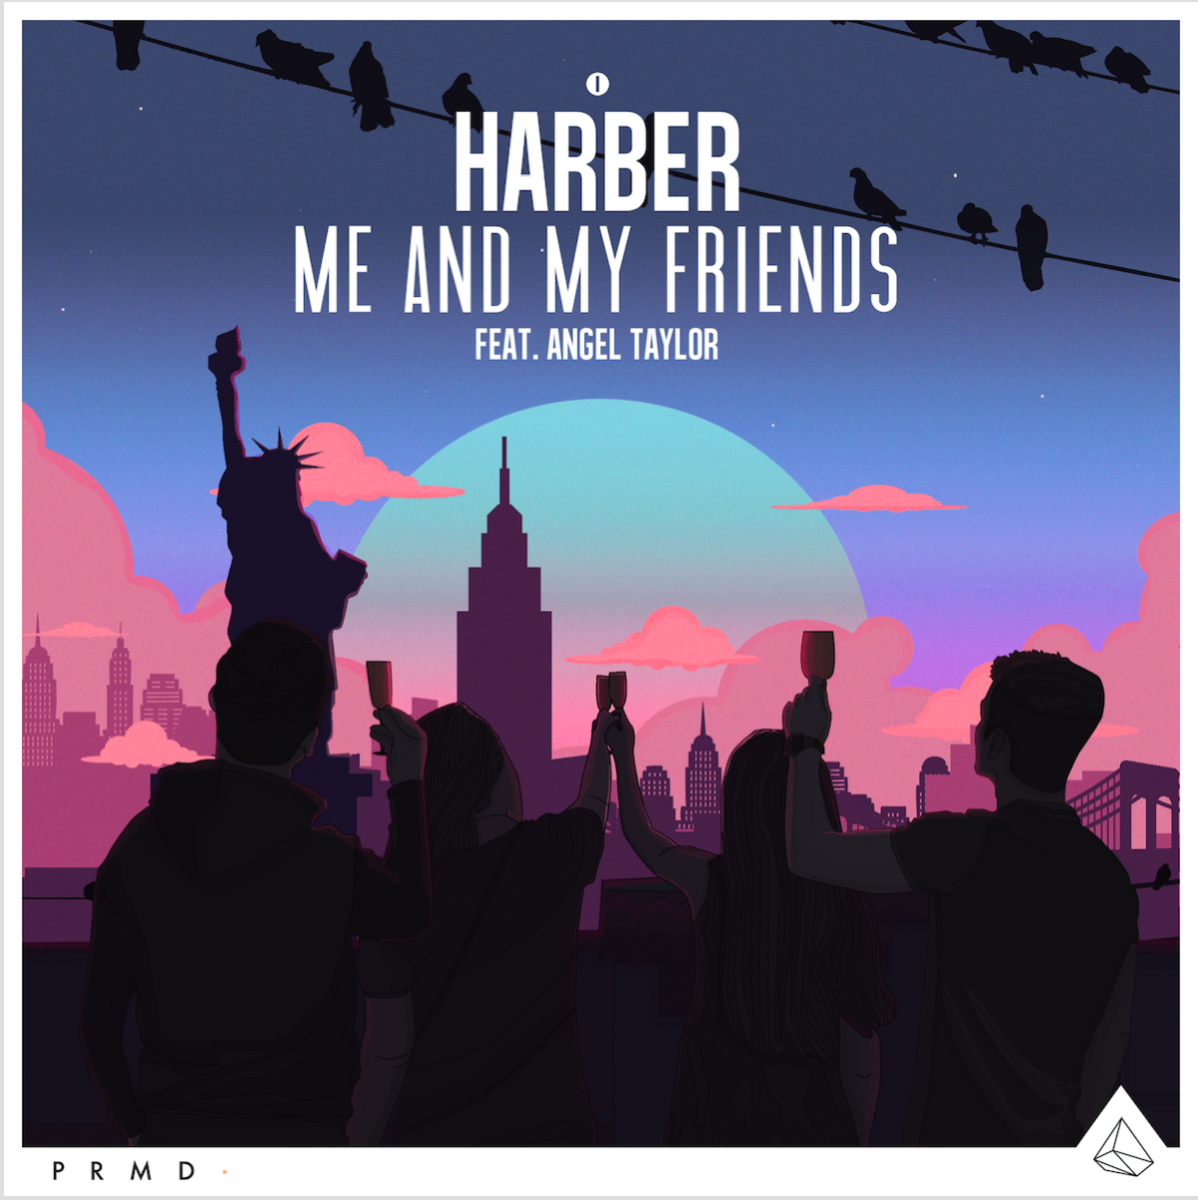 HARBER-feat-Angel-Taylor-Me-and-My-Friends-Cover-Art